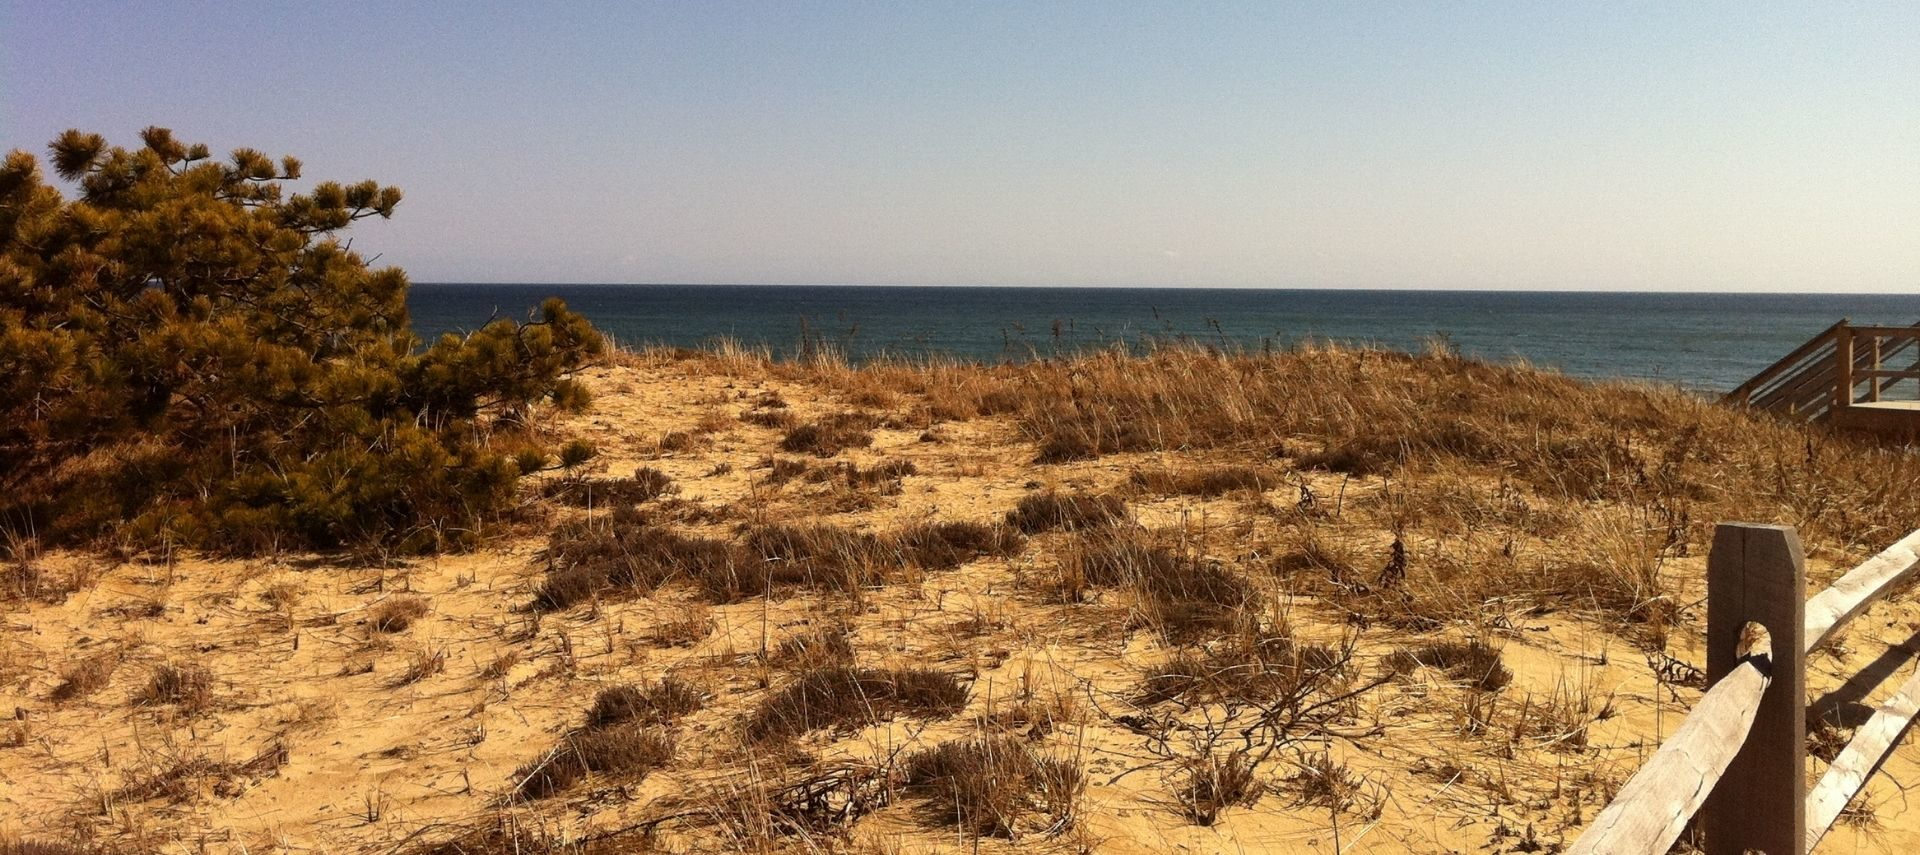 View of the beach on Cape Cod in the fall